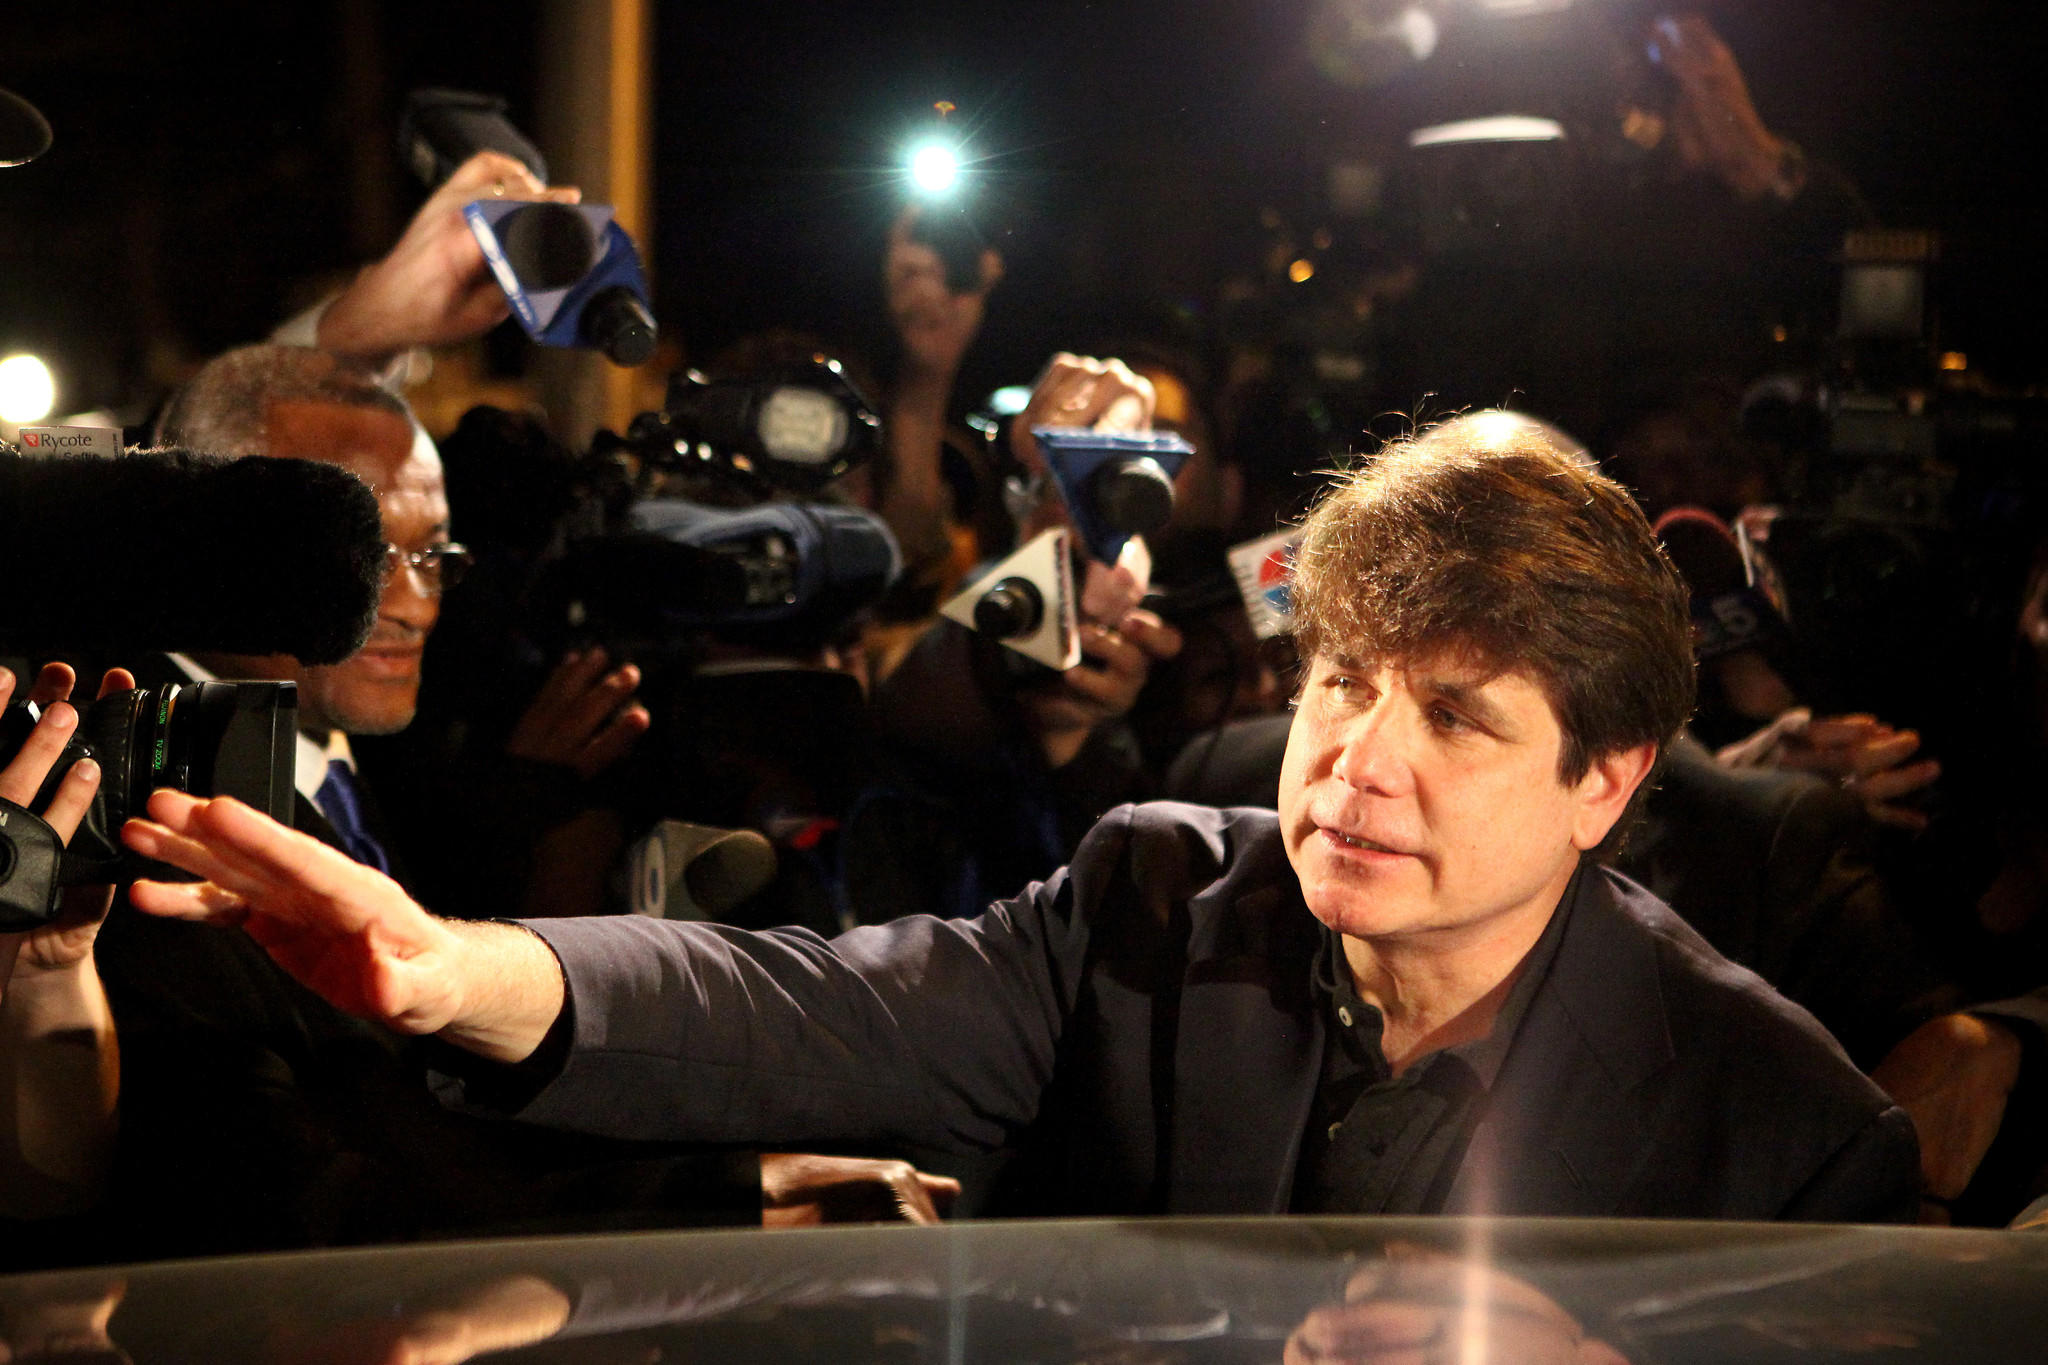 Former Gov. Rod Balgojevich is surrounded by members of the media as he leaves for prison.